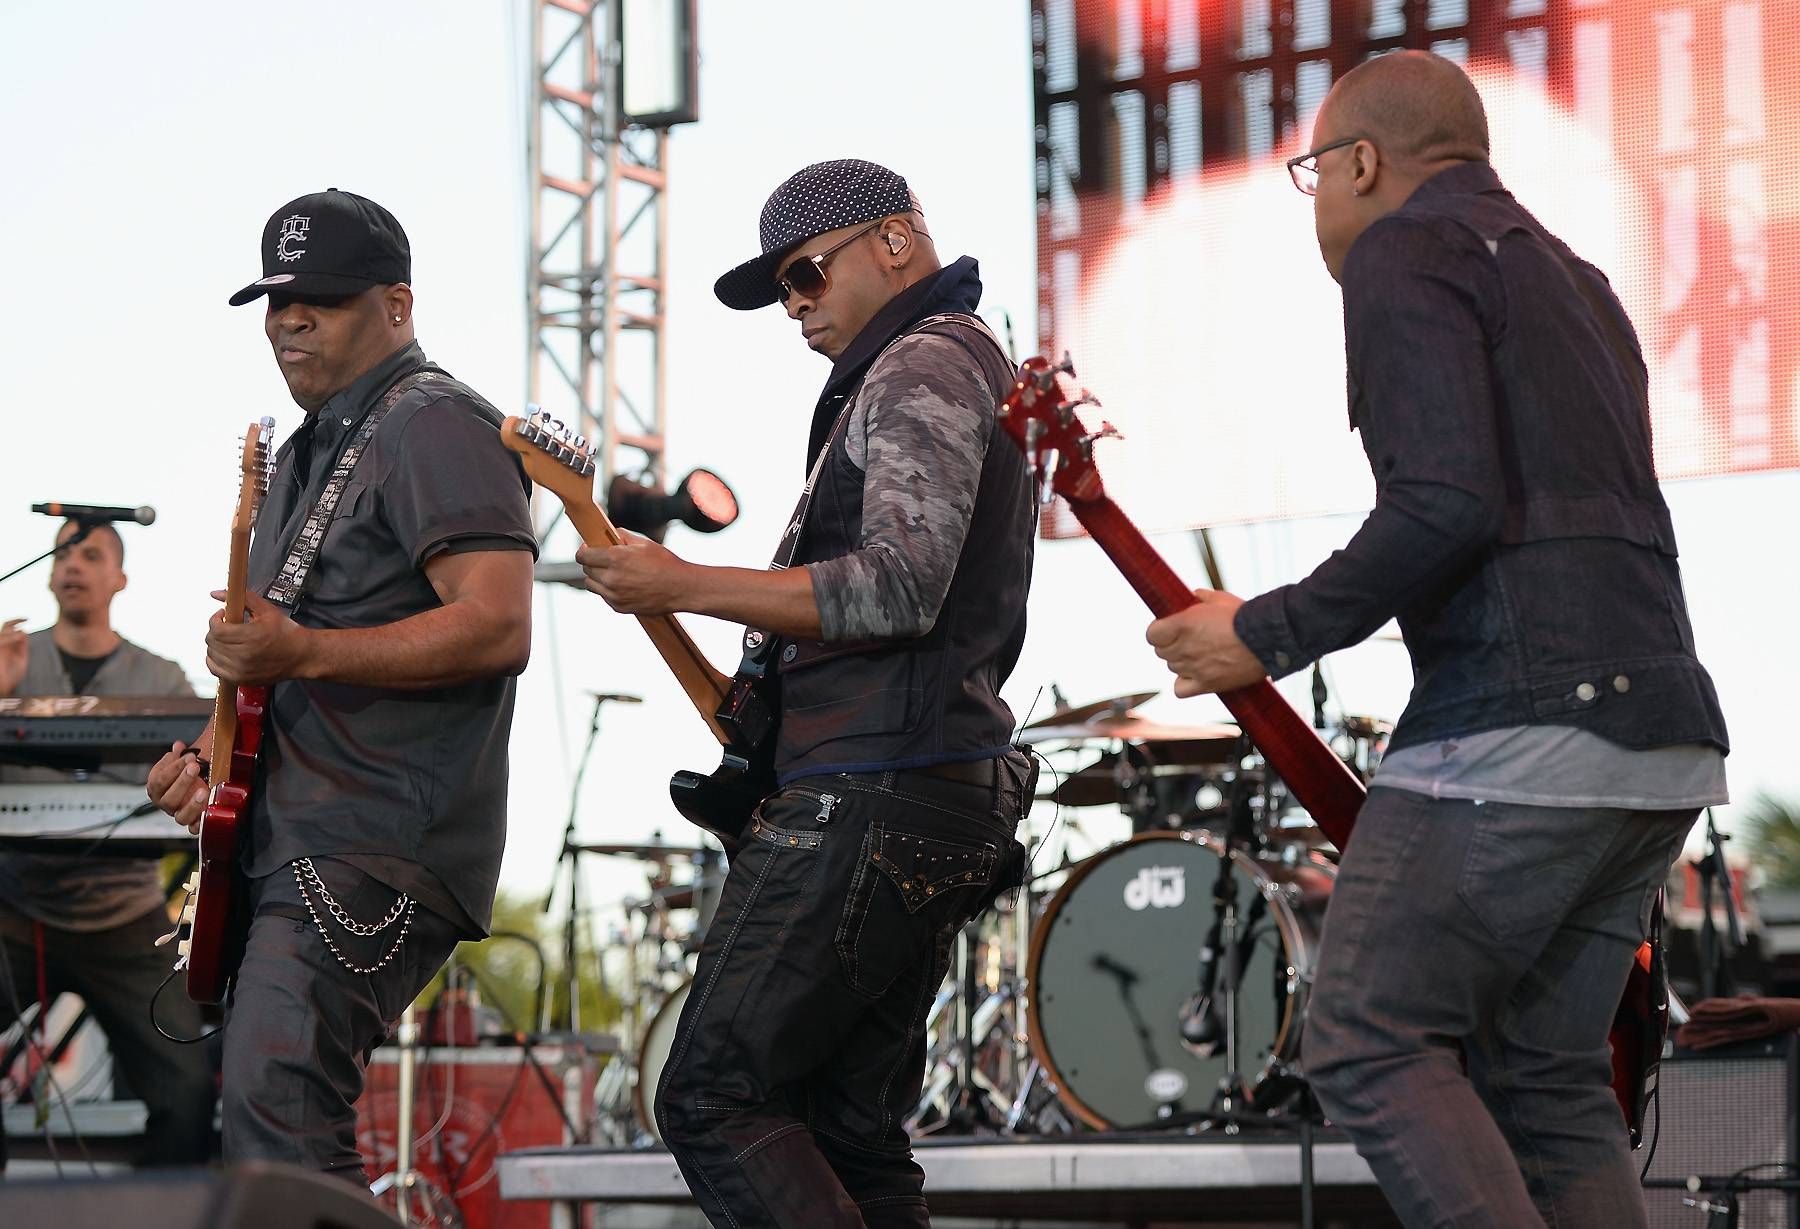 Hit It! - Following in the footsteps of great bands like Earth Wind & Fire and Kool and the Gang, Mint Condition took the iconic funk sound, mixed it with R&B an delivered hit after hit in the '90s. Think you've got what it takes to blend genres and make a name for yourself? Here are tips that may help! (Photo: Larry Marano/Getty Images for Jazz In The Gardens)